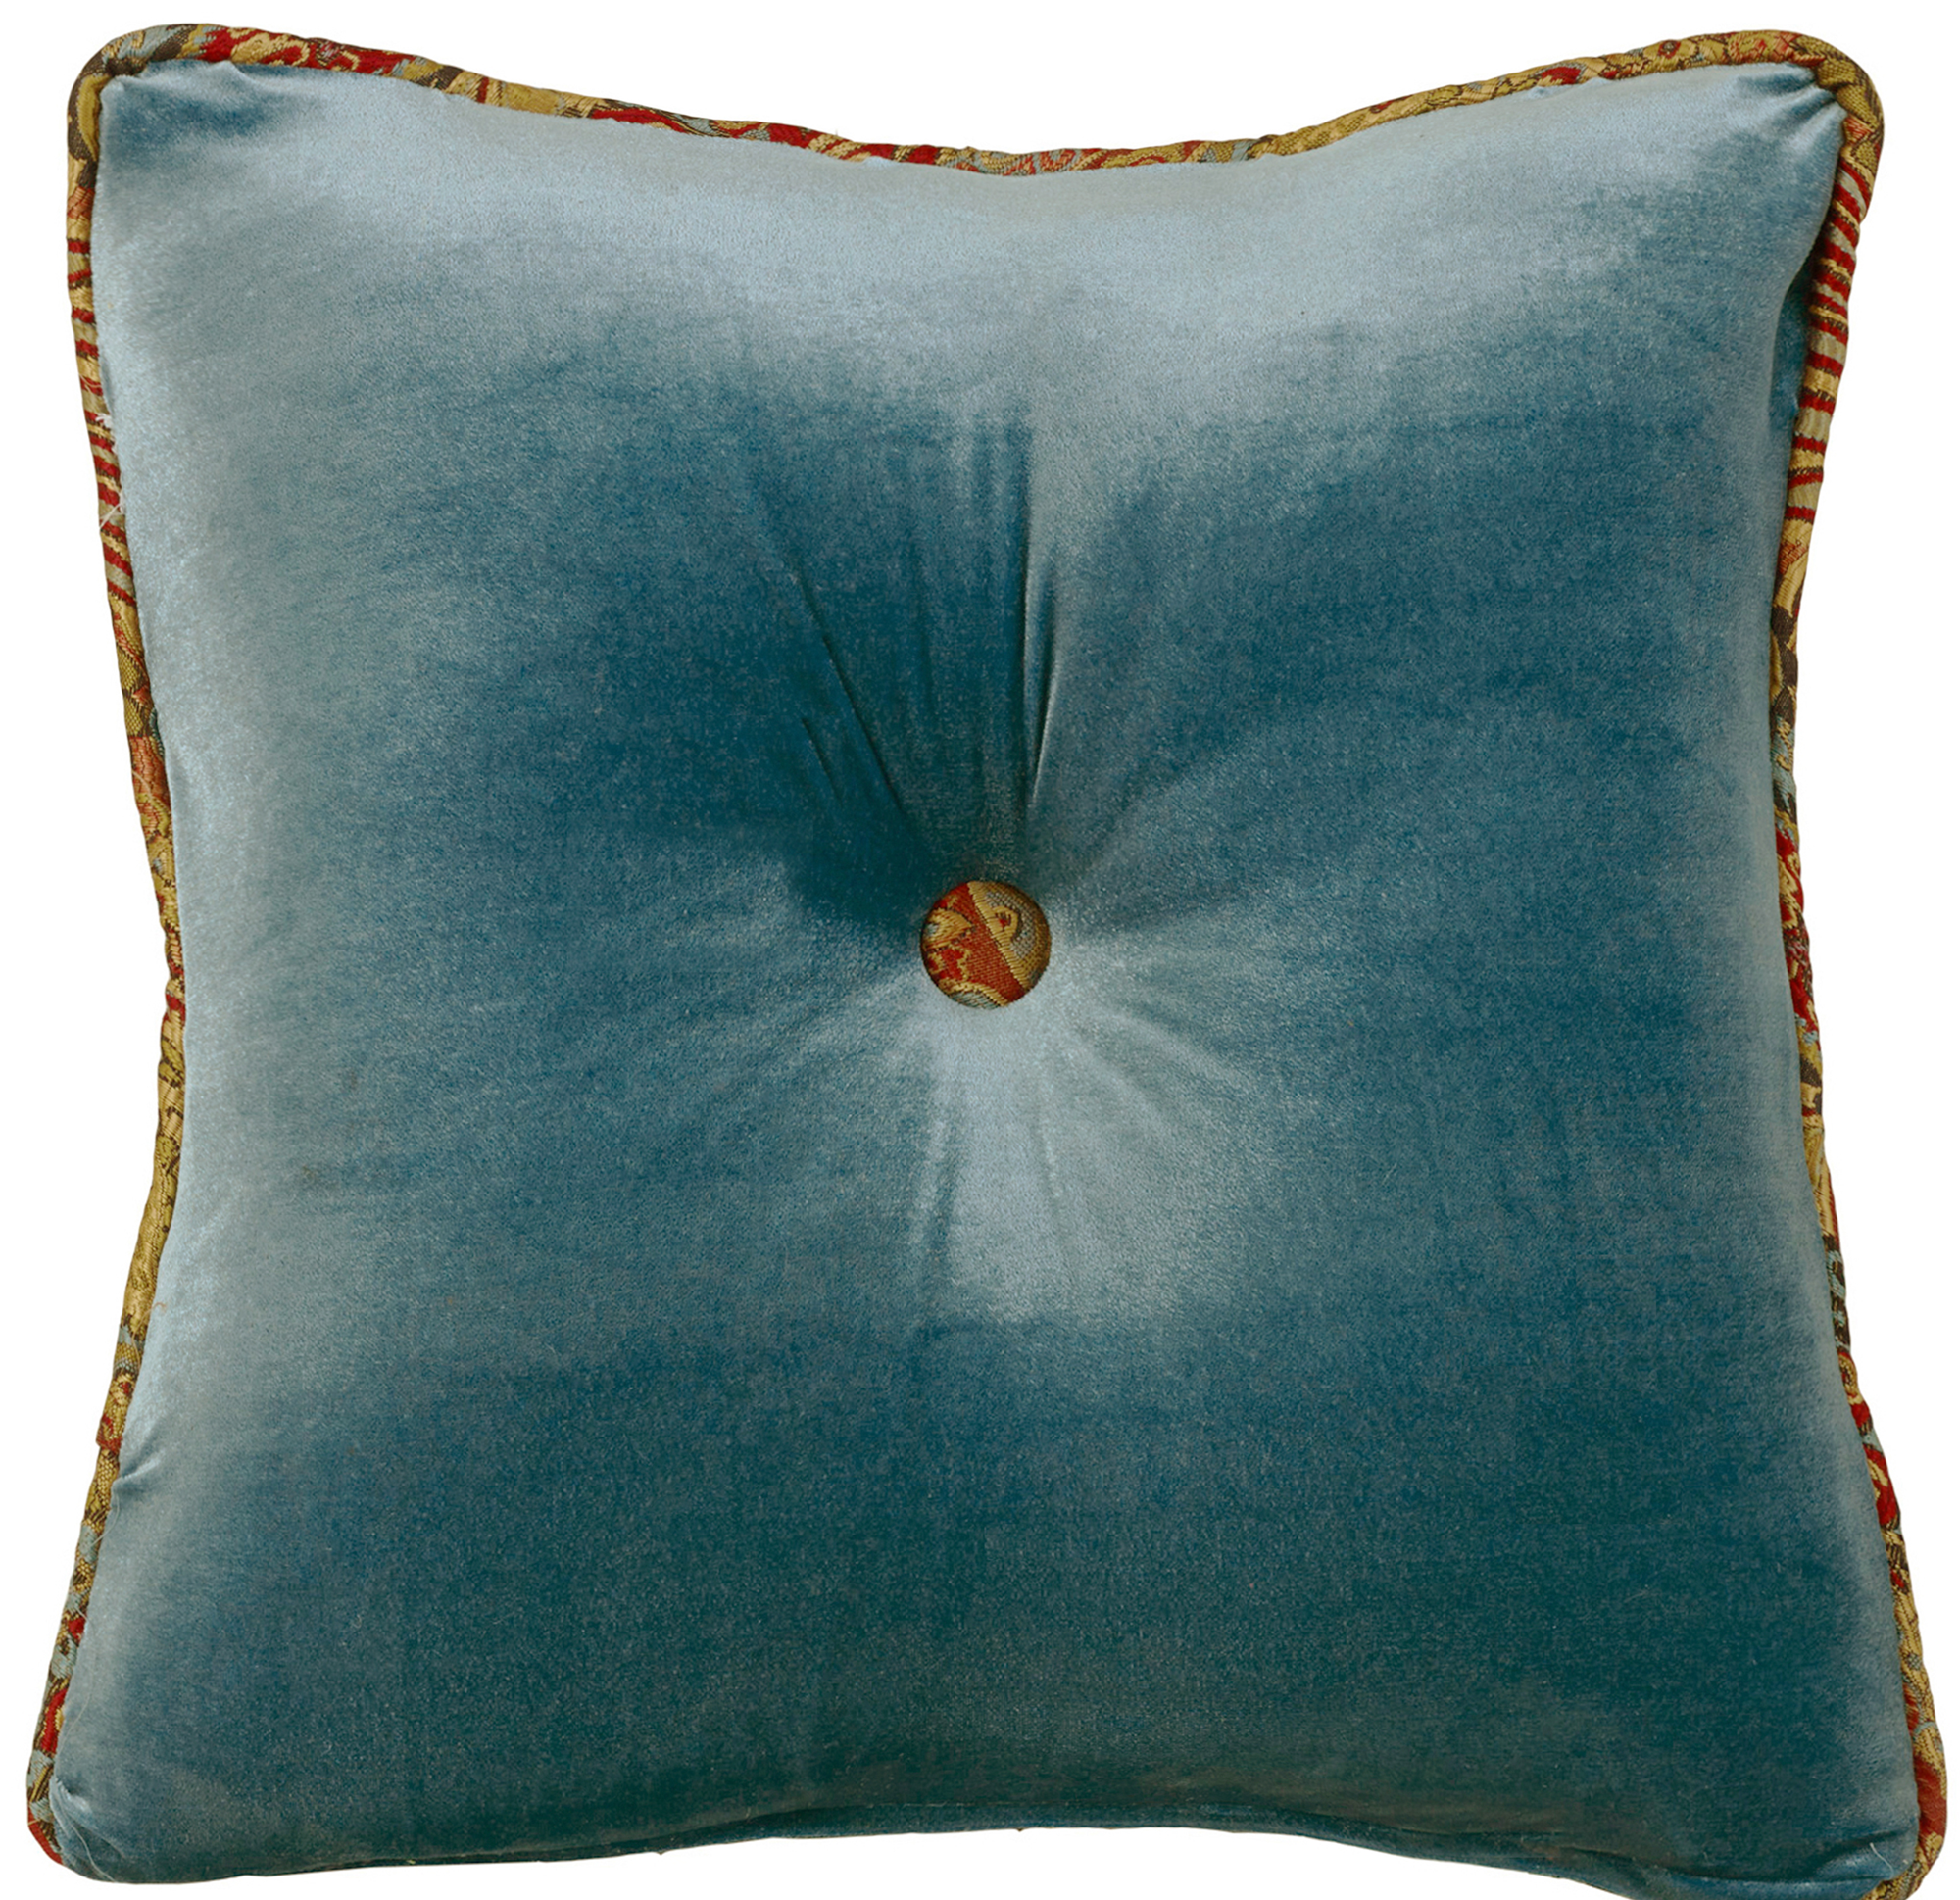 WS4287P5 - Tufted Velvet Pillow - Western Bedding by HiEnd Accents